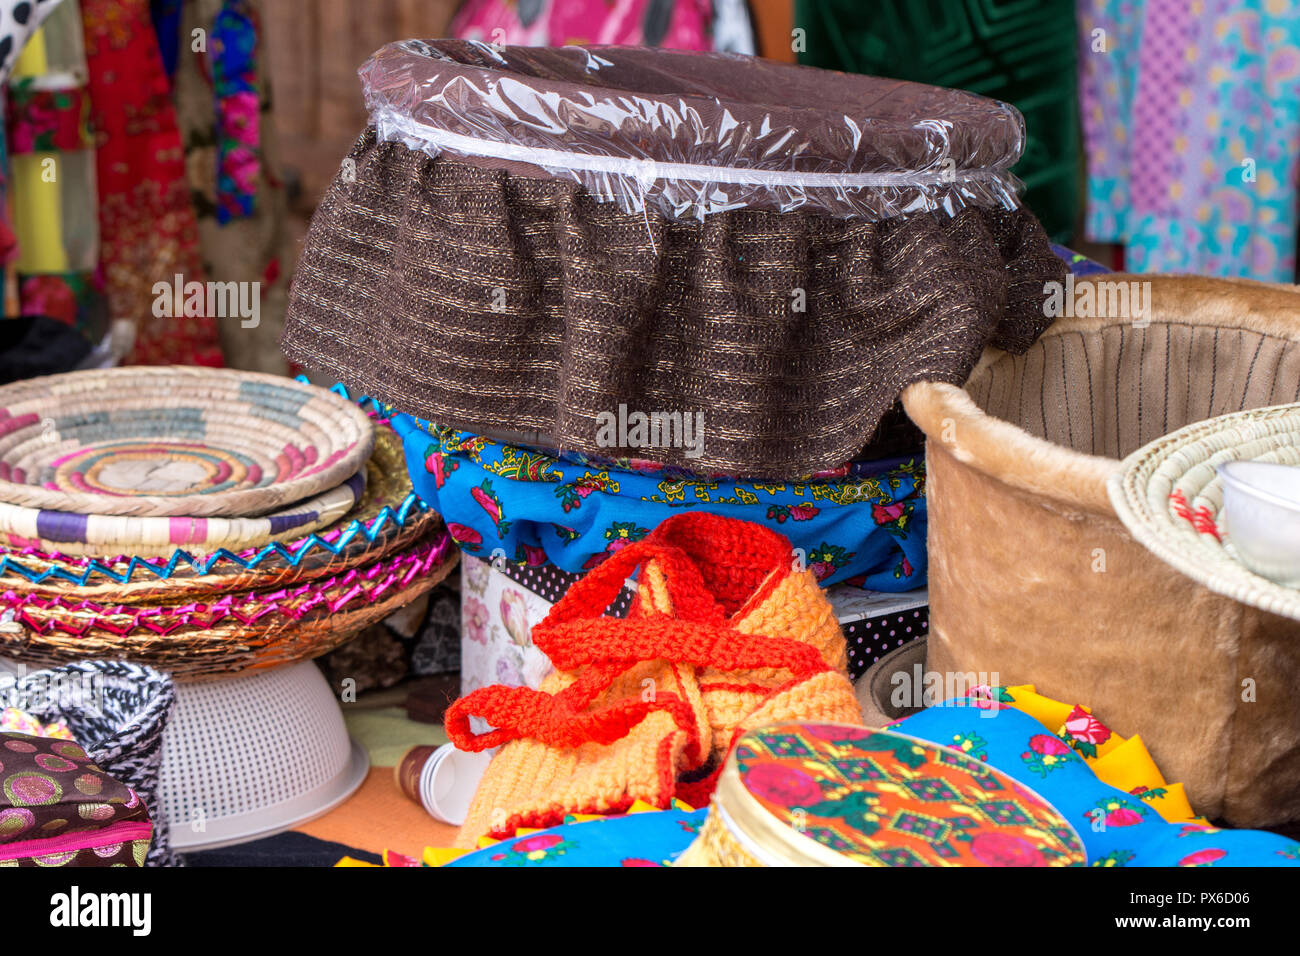 Beautiful jute straw baskets for sale at a shop in Riyadh, traditional handcrafts from Saudi Arabia Stock Photo